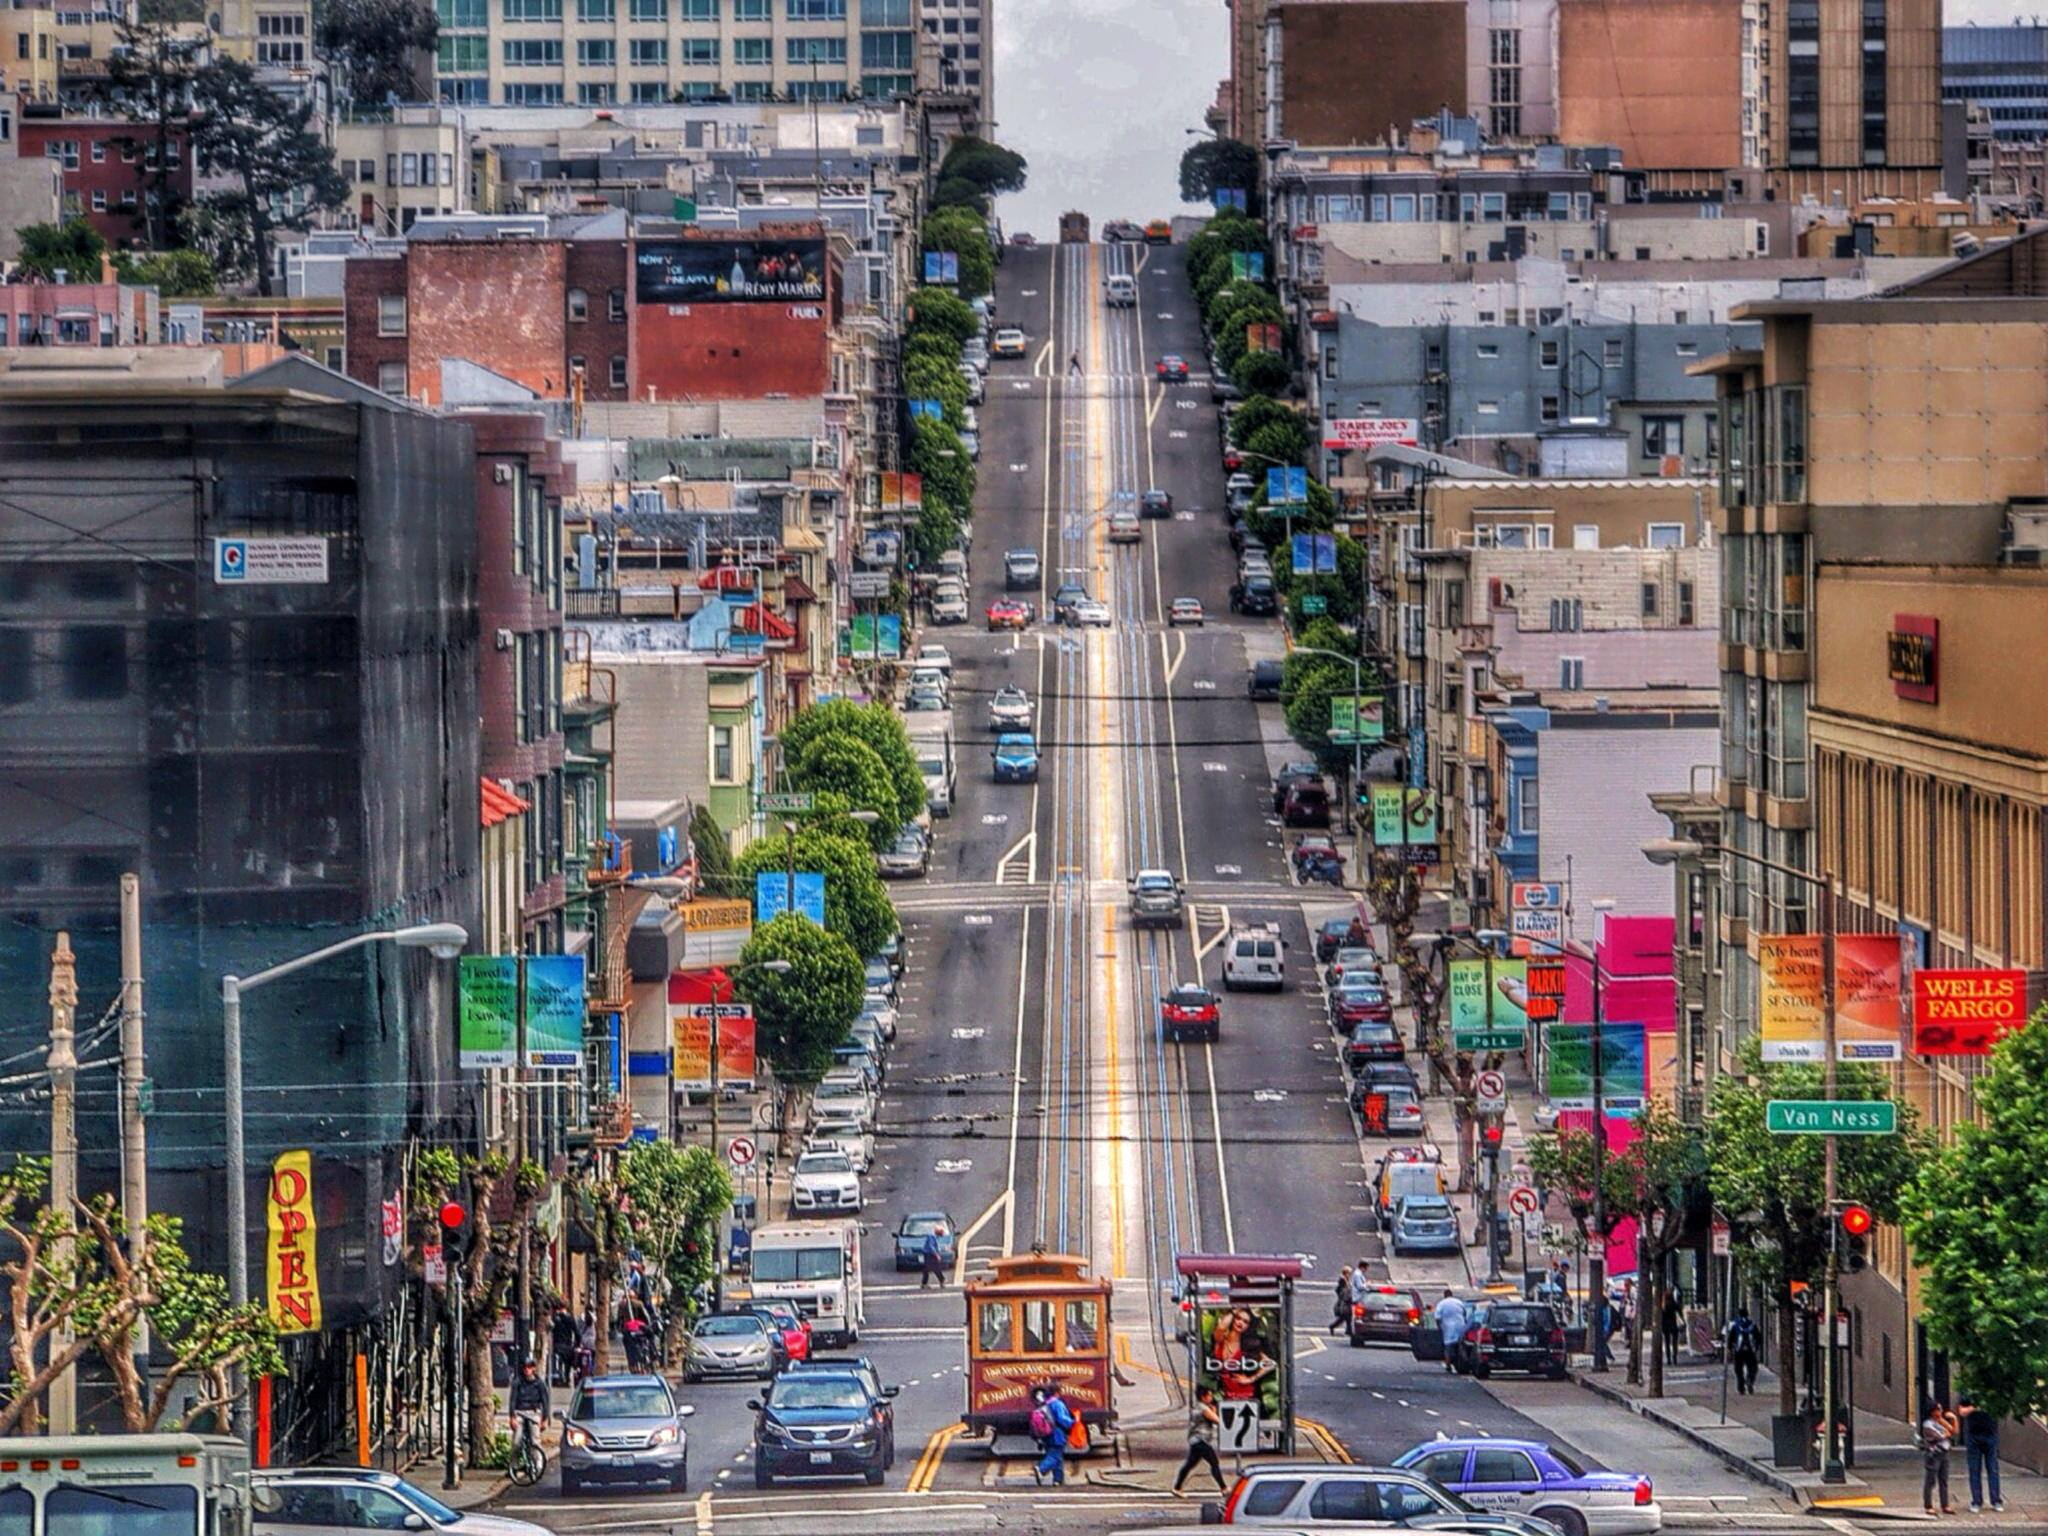 san francisco hilly streets hd wallpaper, background images